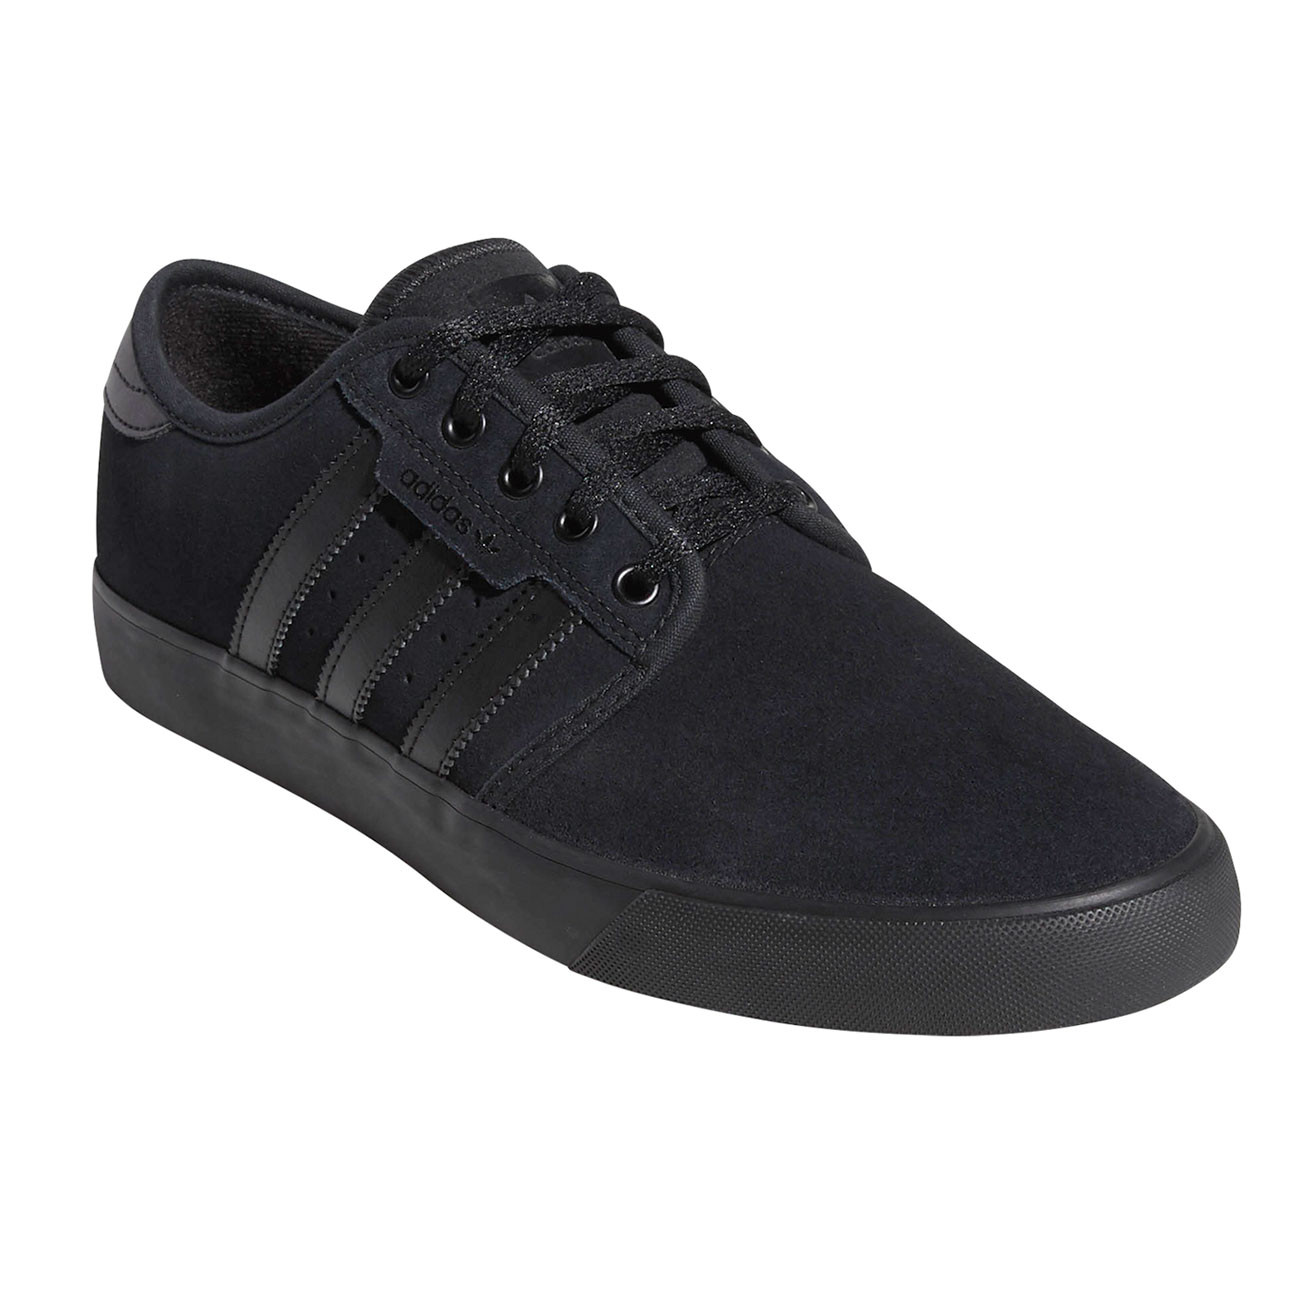 Sneakers Adidas Seeley core black/core